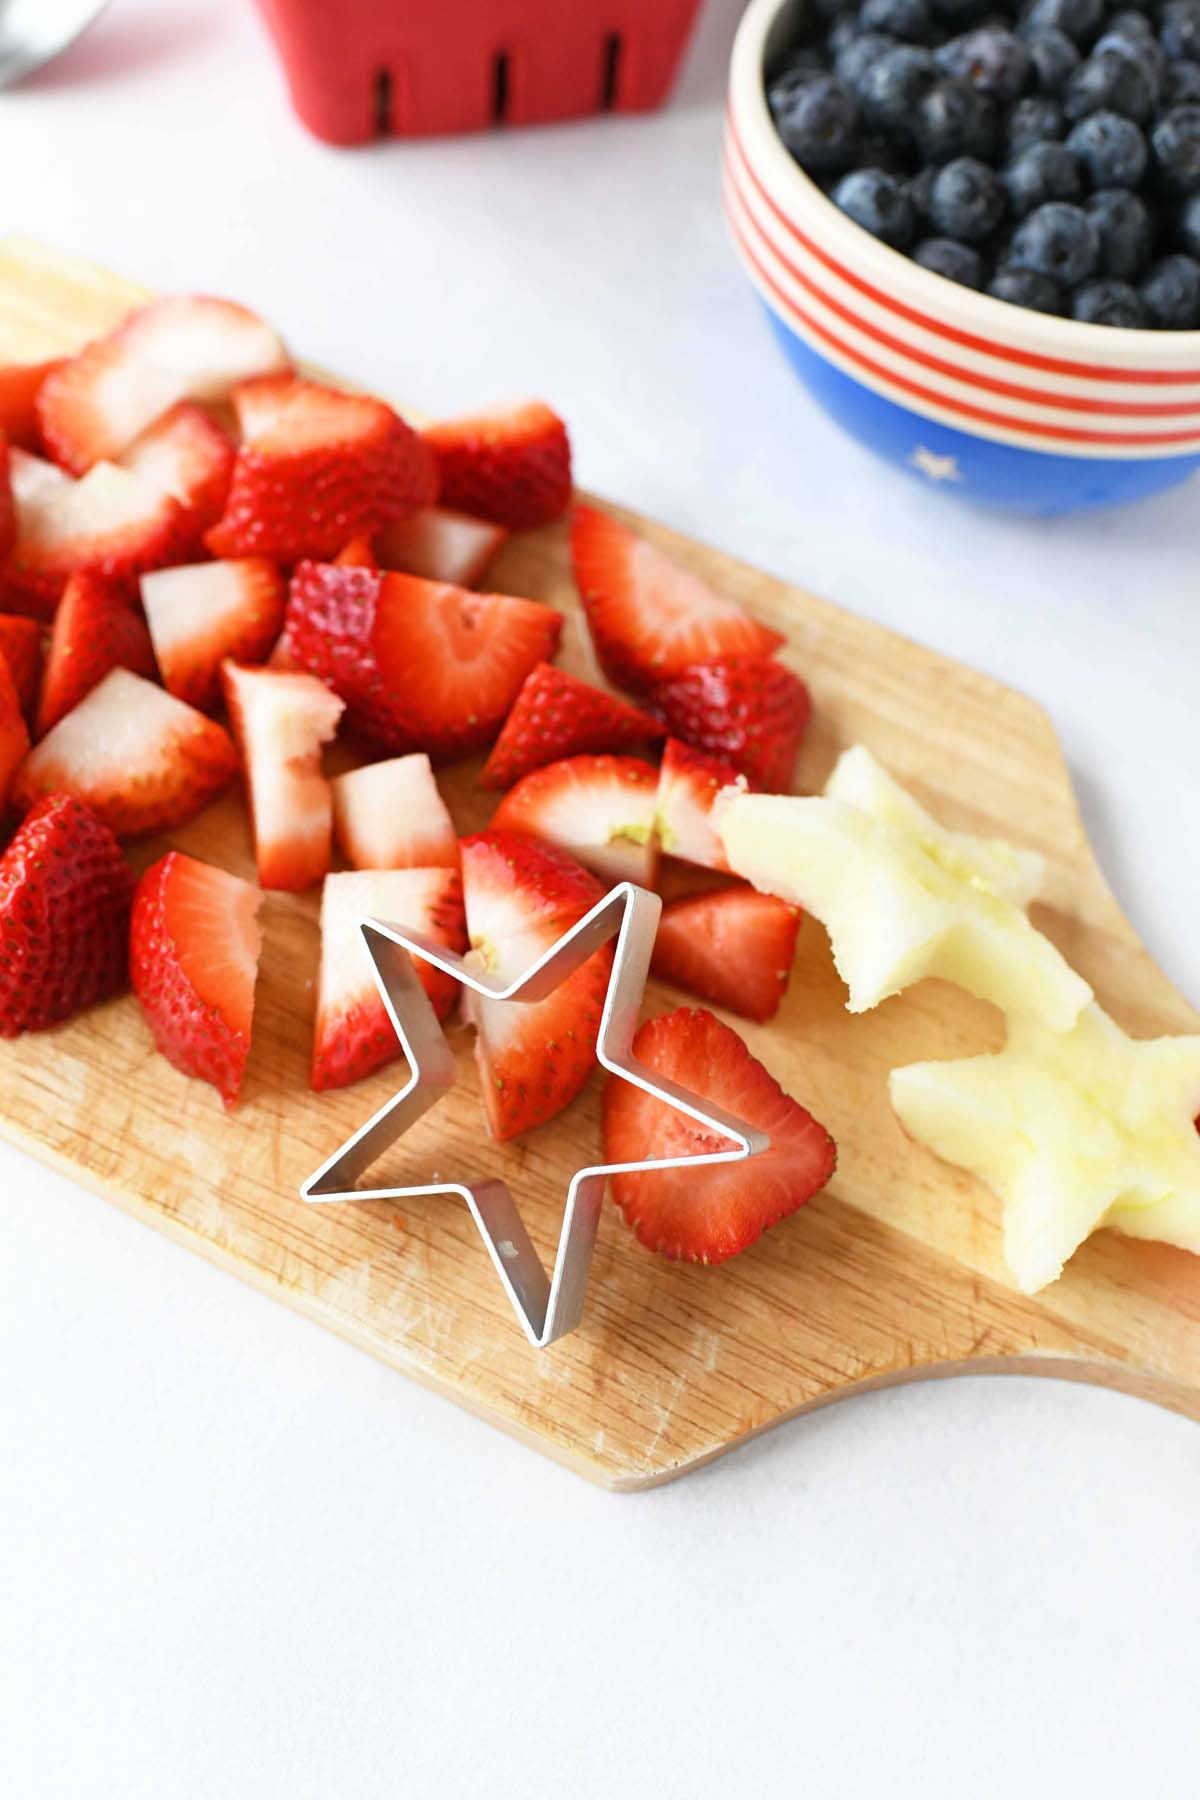 Sliced strawberries and star apple cutouts on a wooden cutting board.